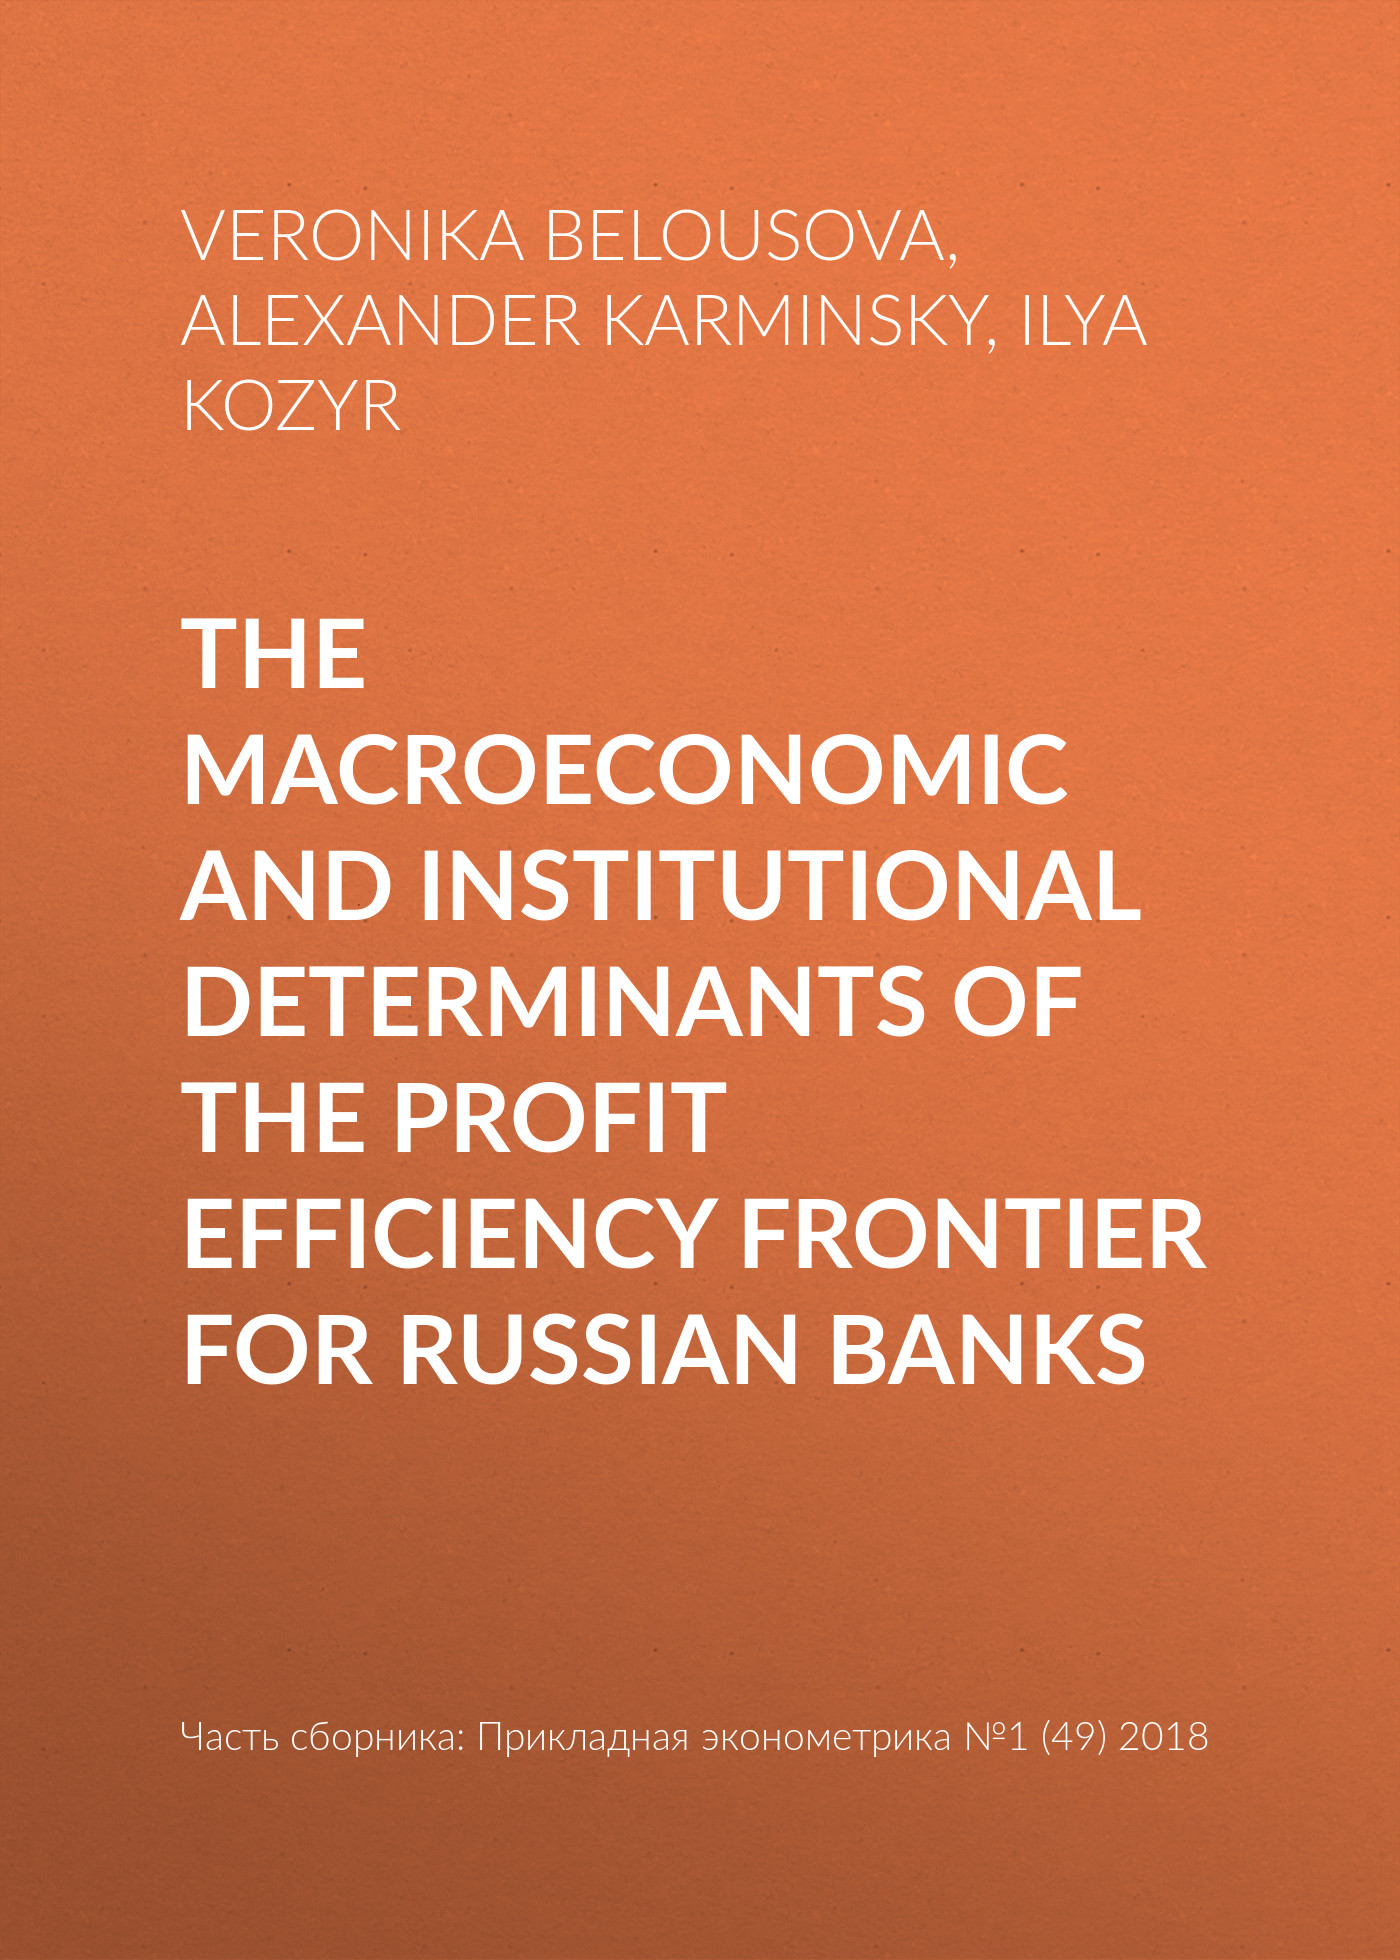 Veronika Belousova The macroeconomic and institutional determinants of the profit efficiency frontier for Russian banks love moschino брелок для ключей